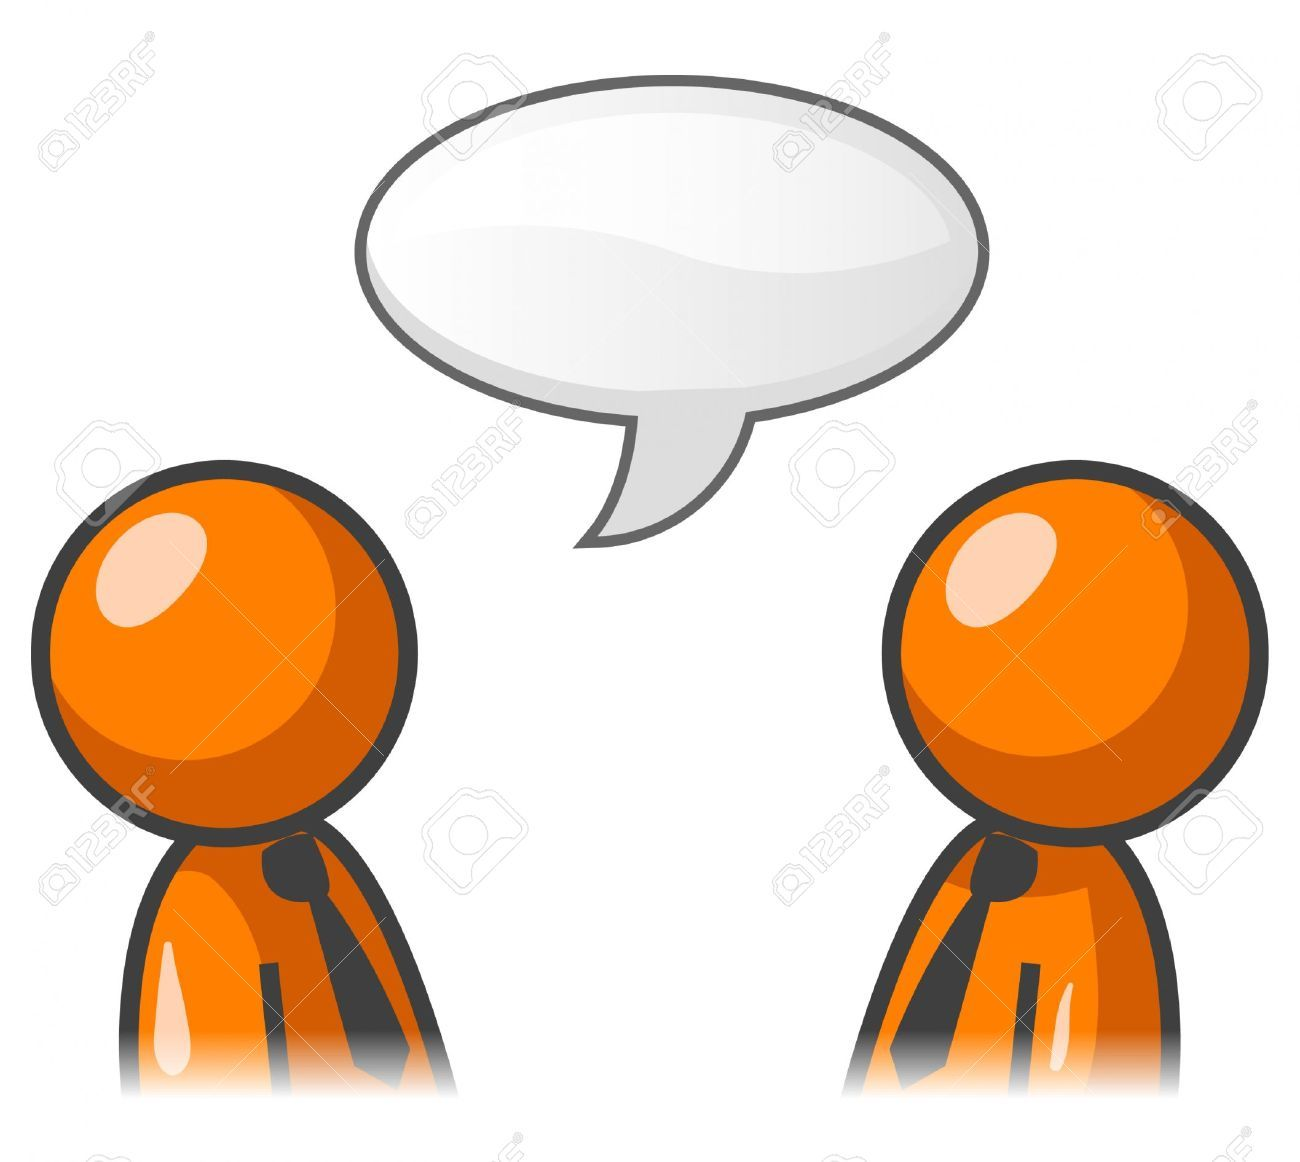 two people communicating clipart.